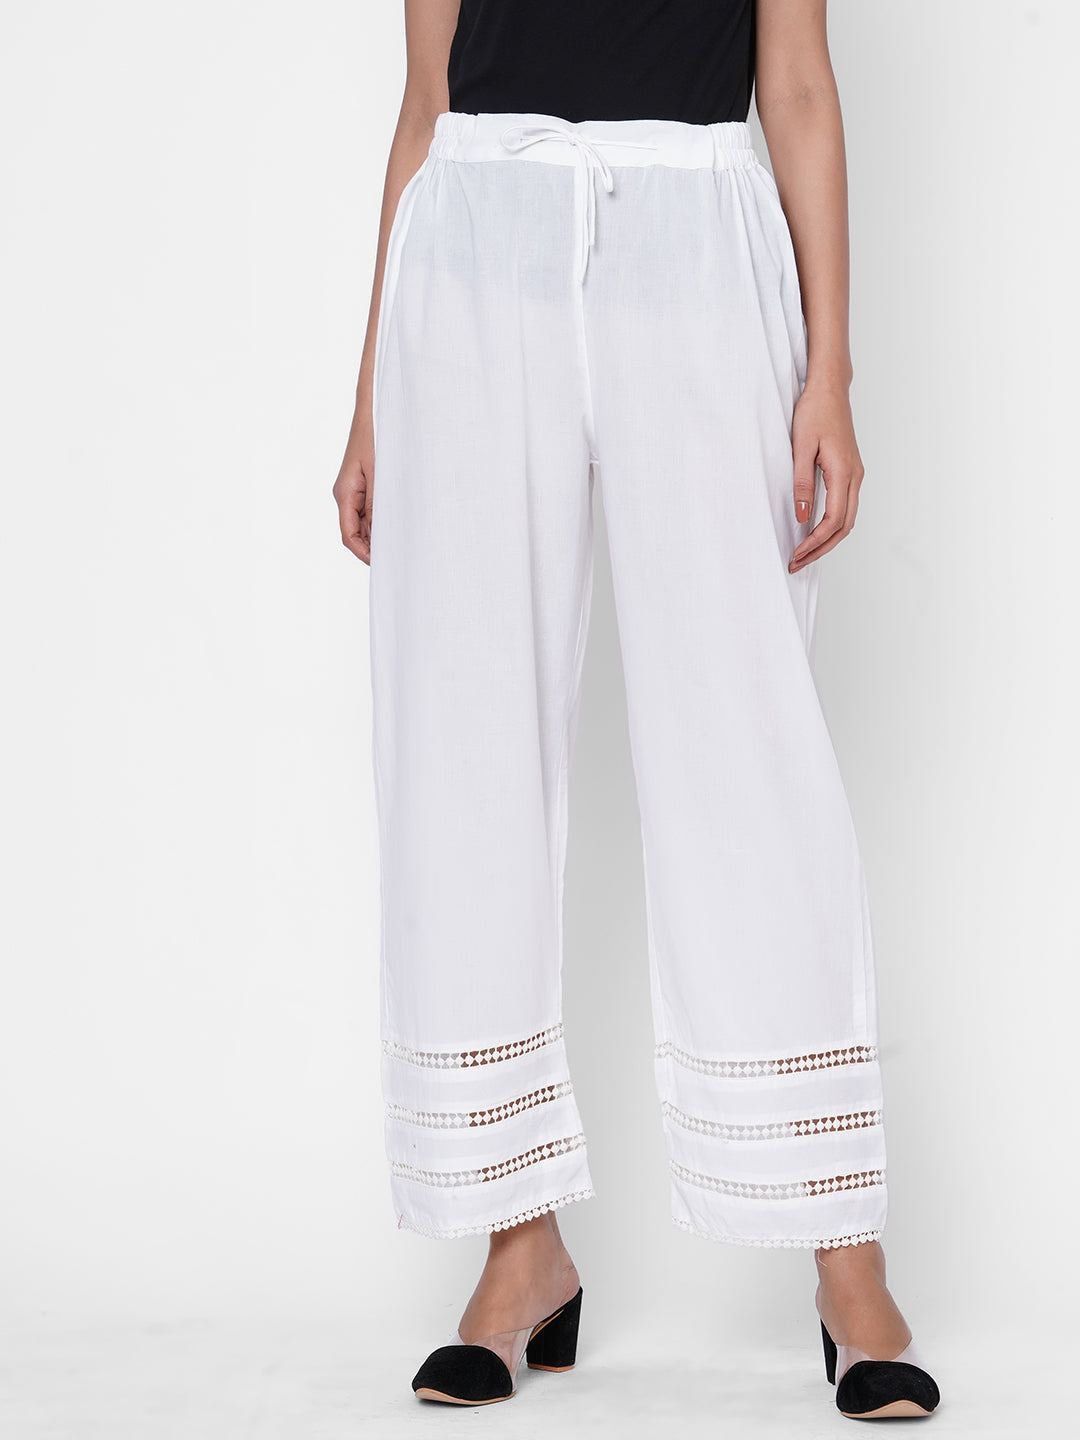 White Solid Cotton Laced Palazzo - White